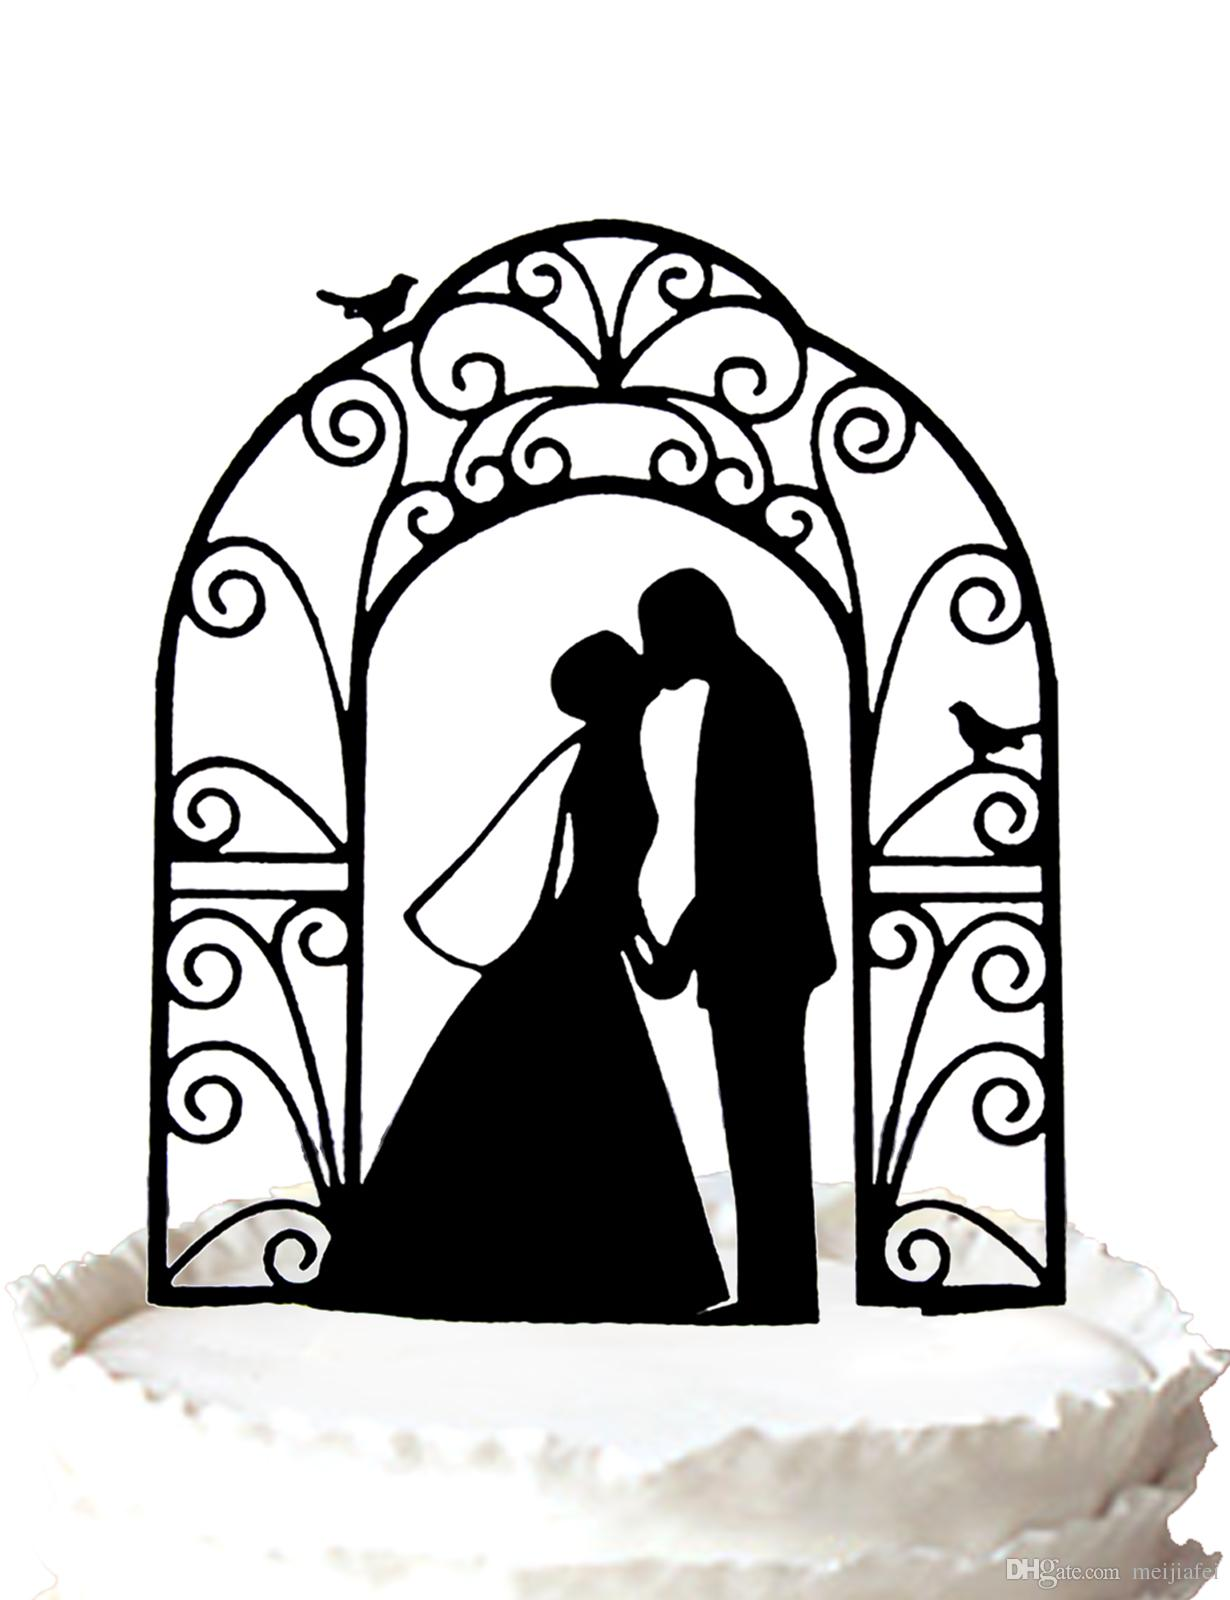 Bride And Groom Silhouette Free Clip Art